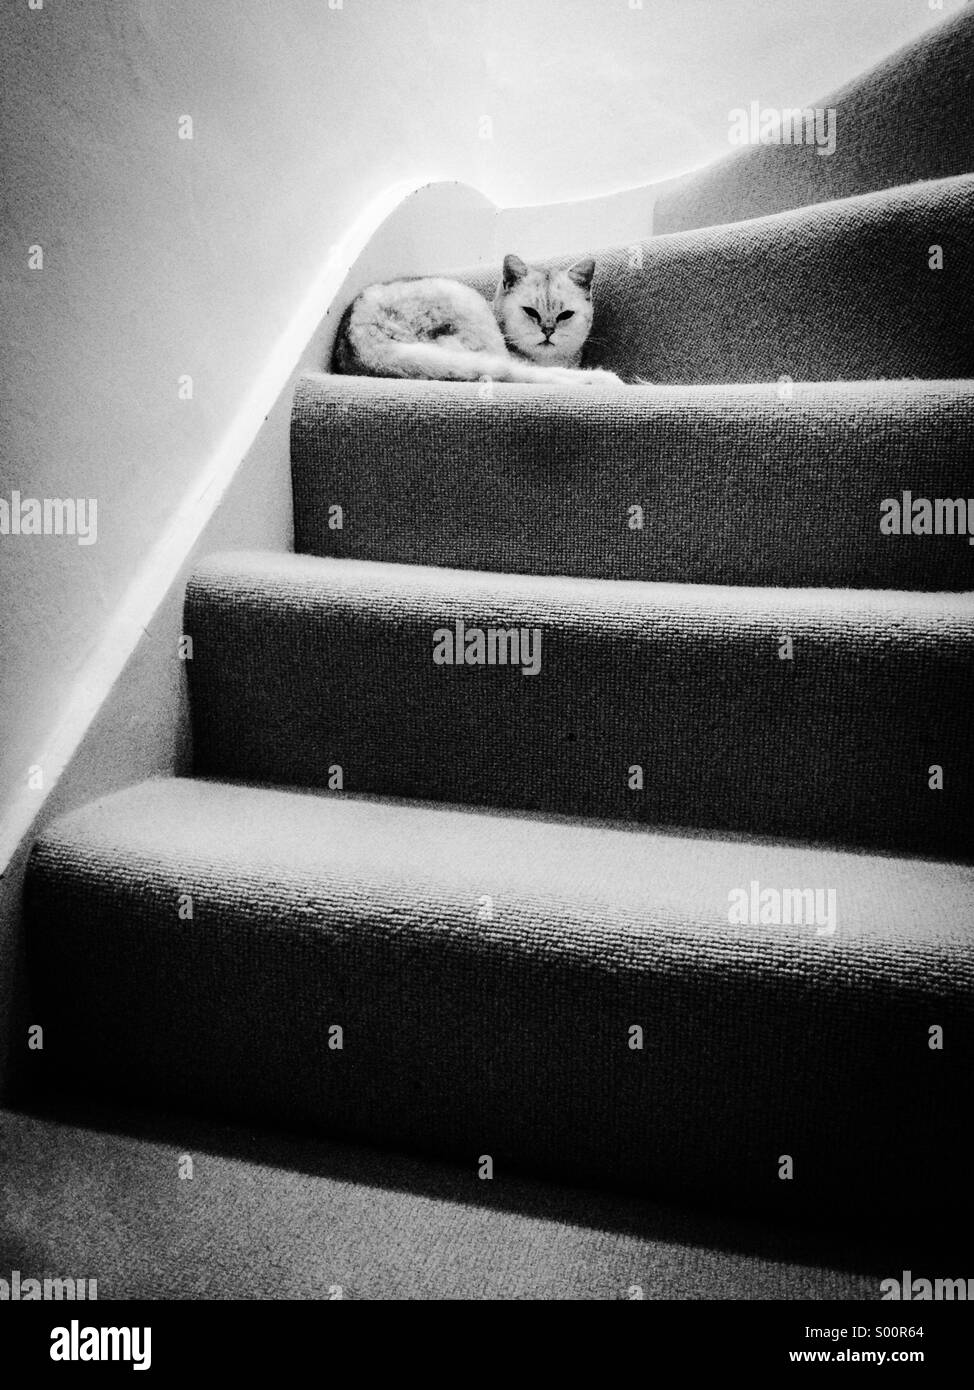 Chat blanc reposant sur des escaliers Photo Stock